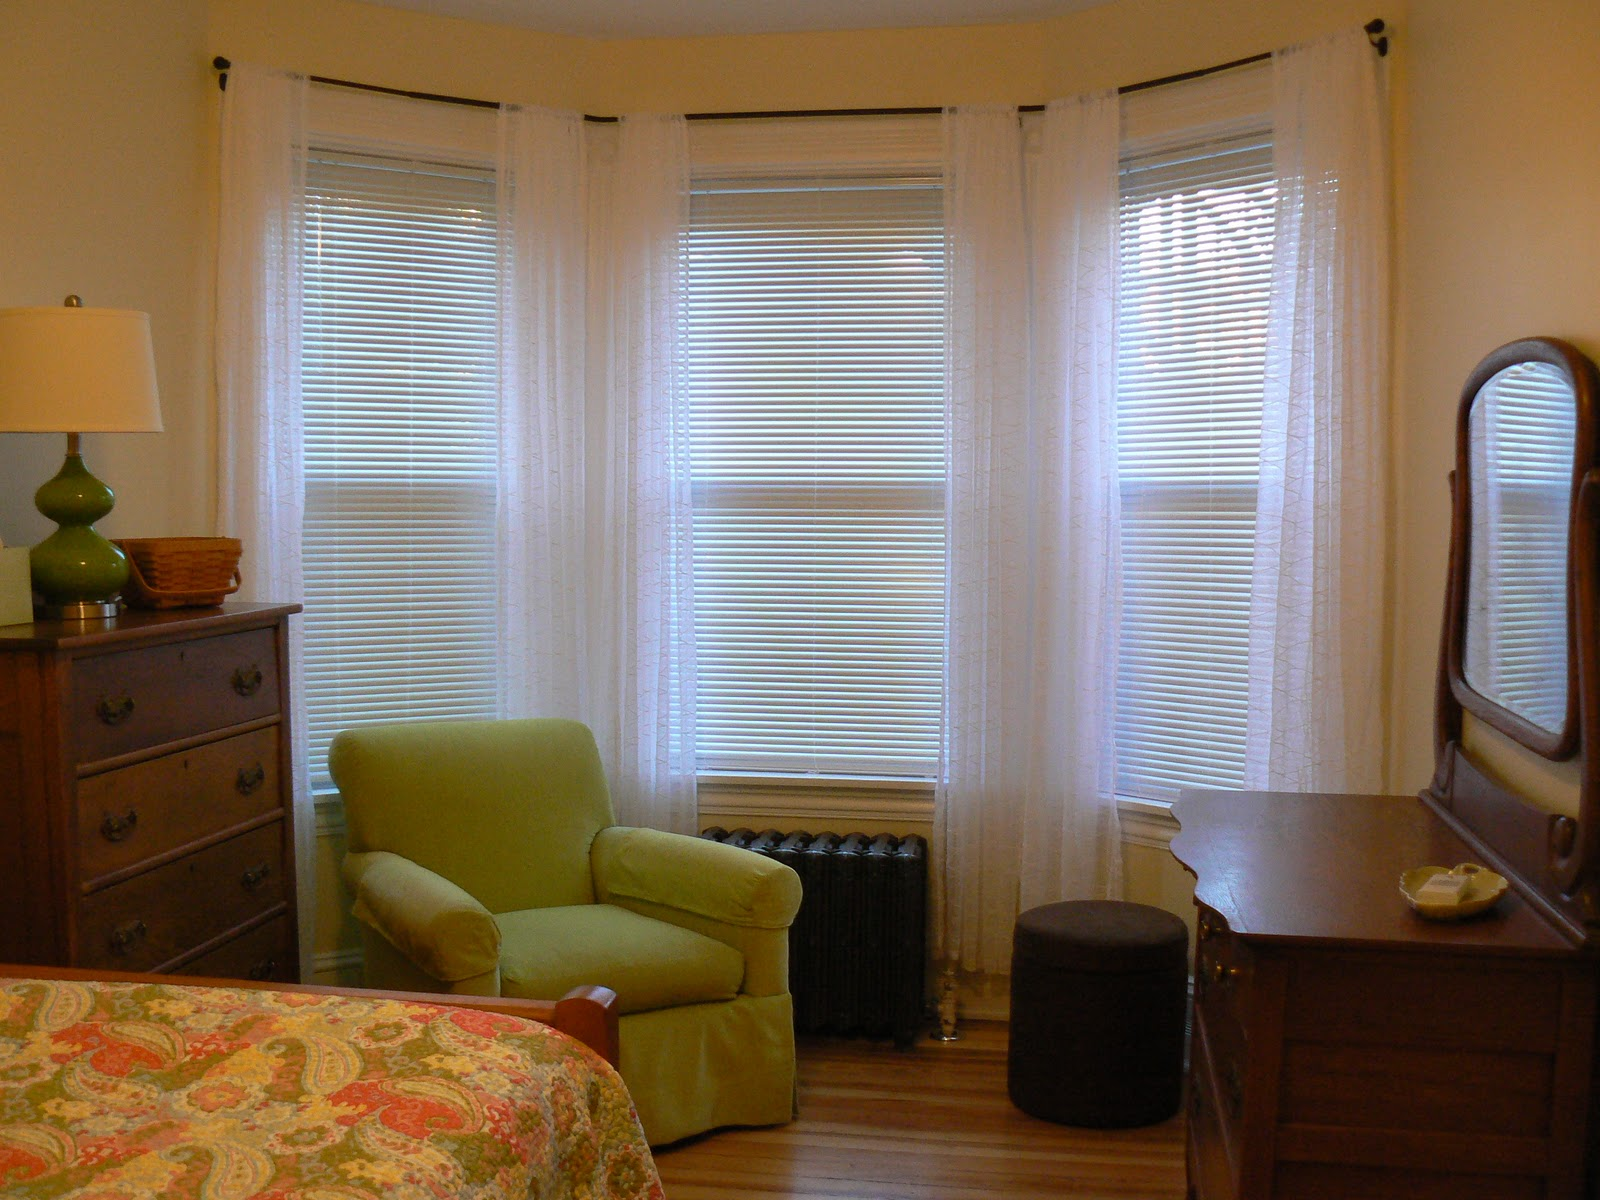 Window Curtain Decorating Ideas: Caring For The House: KEYS